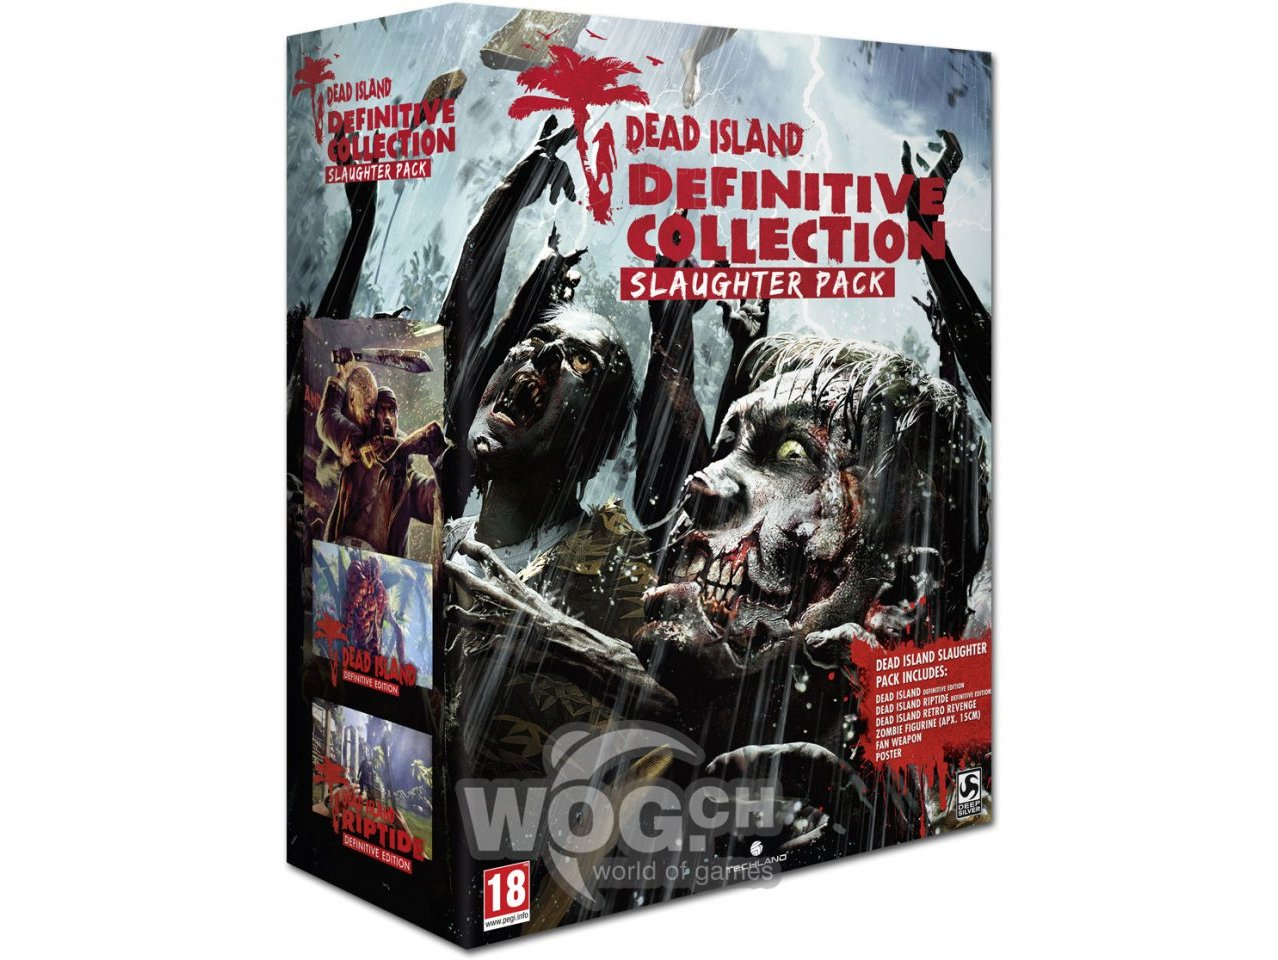 Скриншот игры Dead Island: Definitive Collection : Slaughter Pack [PC] для PC